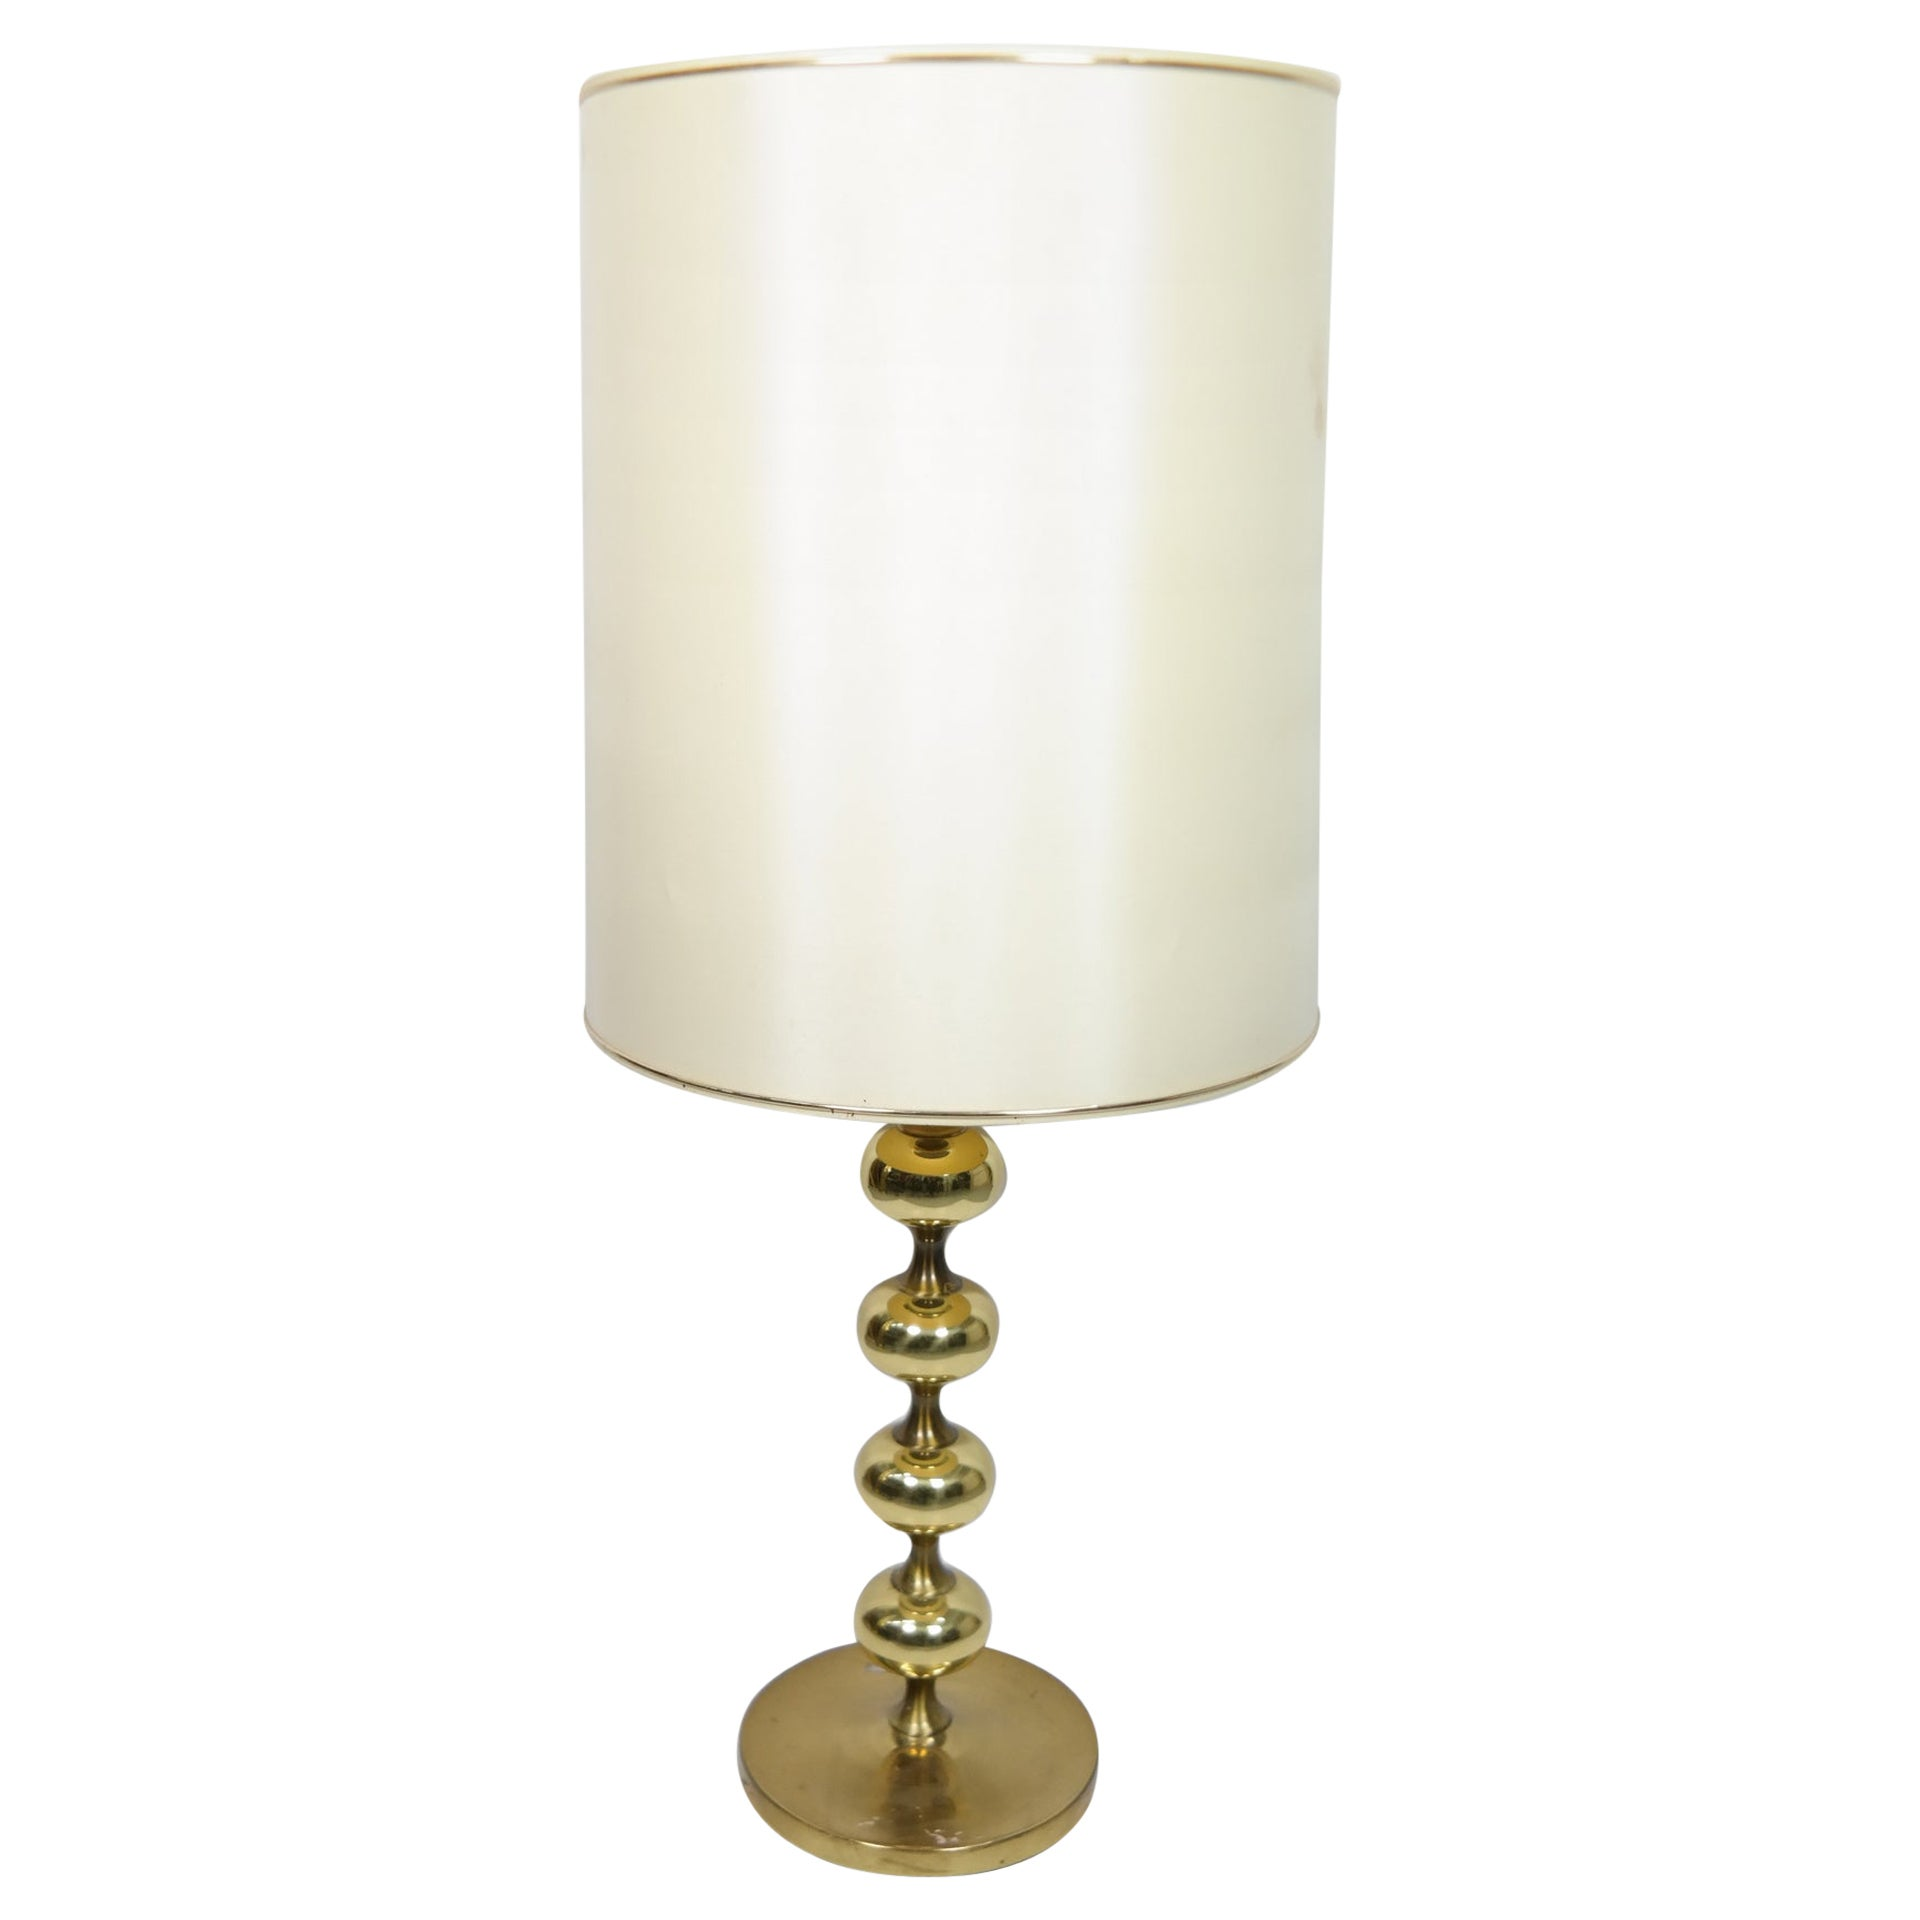 Hollywood Regency Style Brass Table Lamp, 1960s